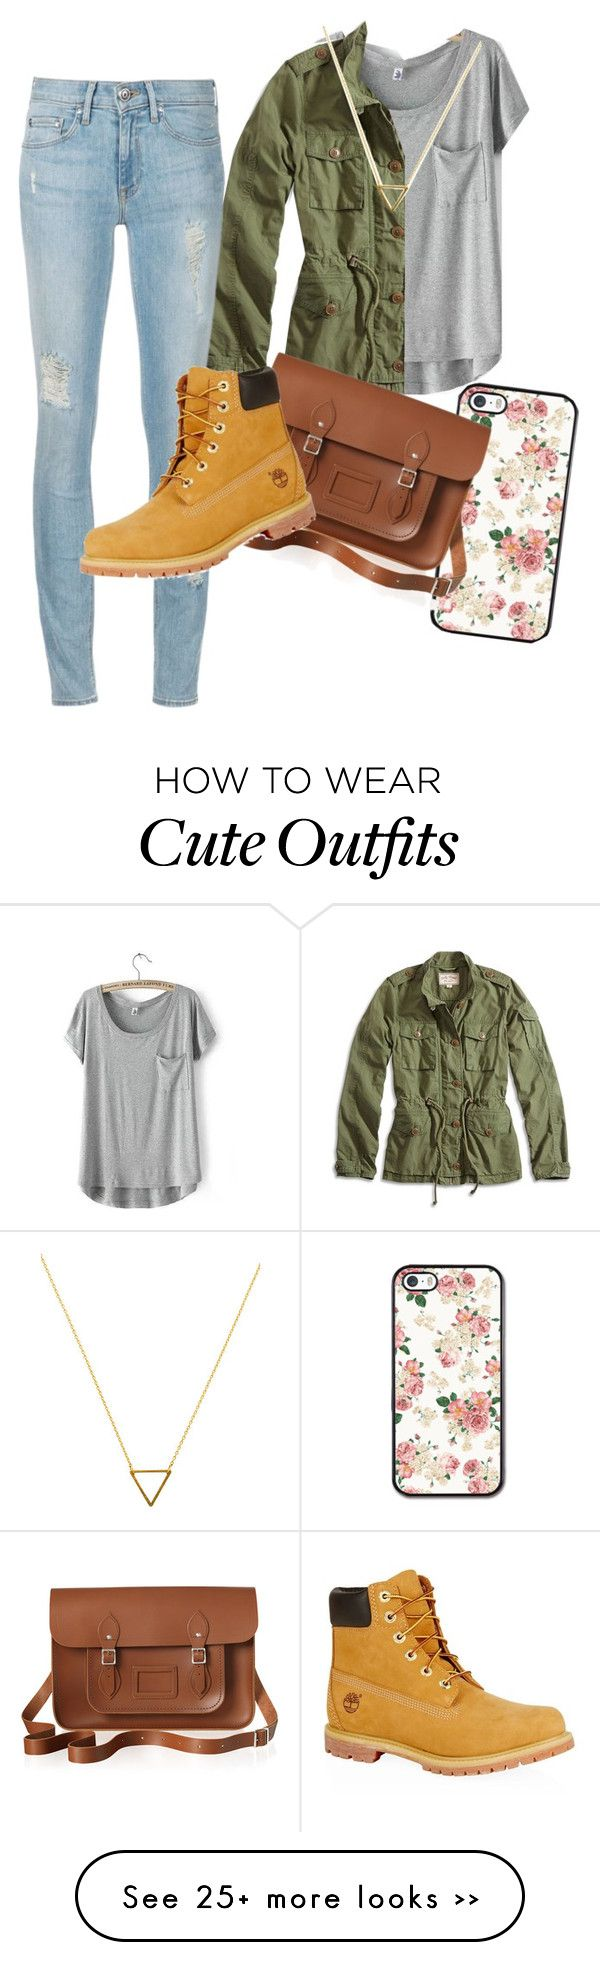 """cute outfit for fall!! (even though its summer!)"" by tmwestover on Polyvore"